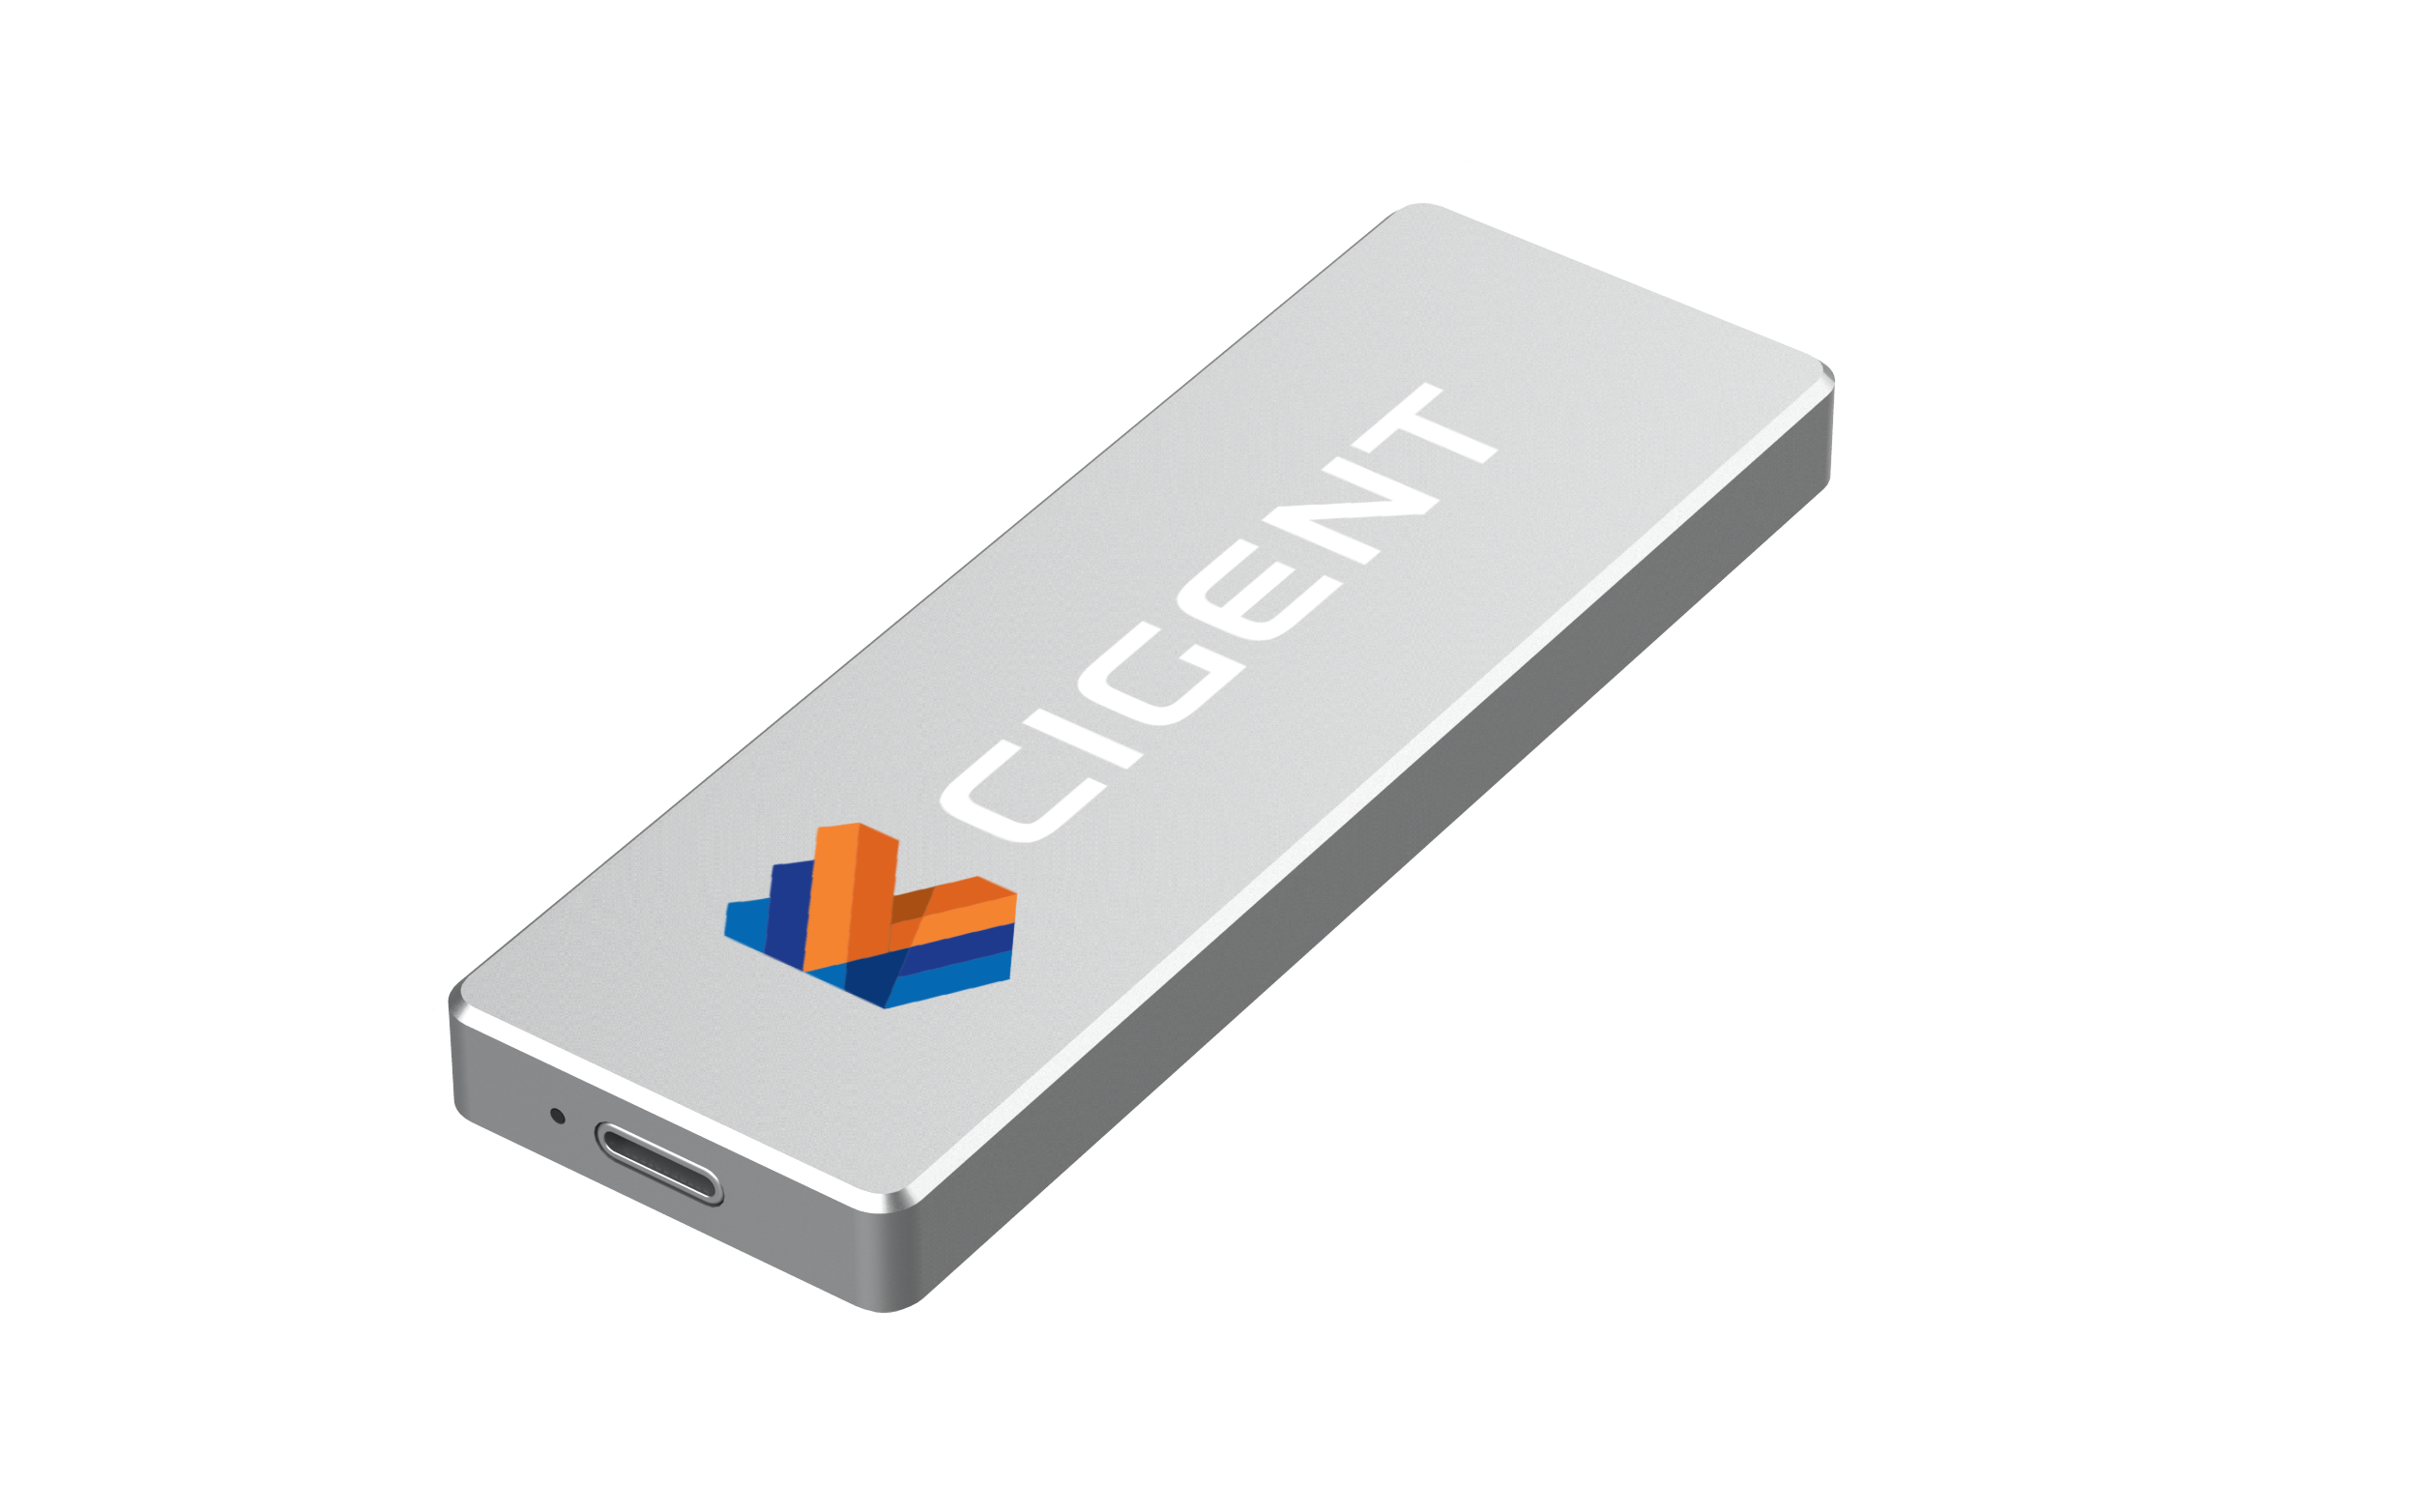 Cigent Secure SSD K2 External Storage